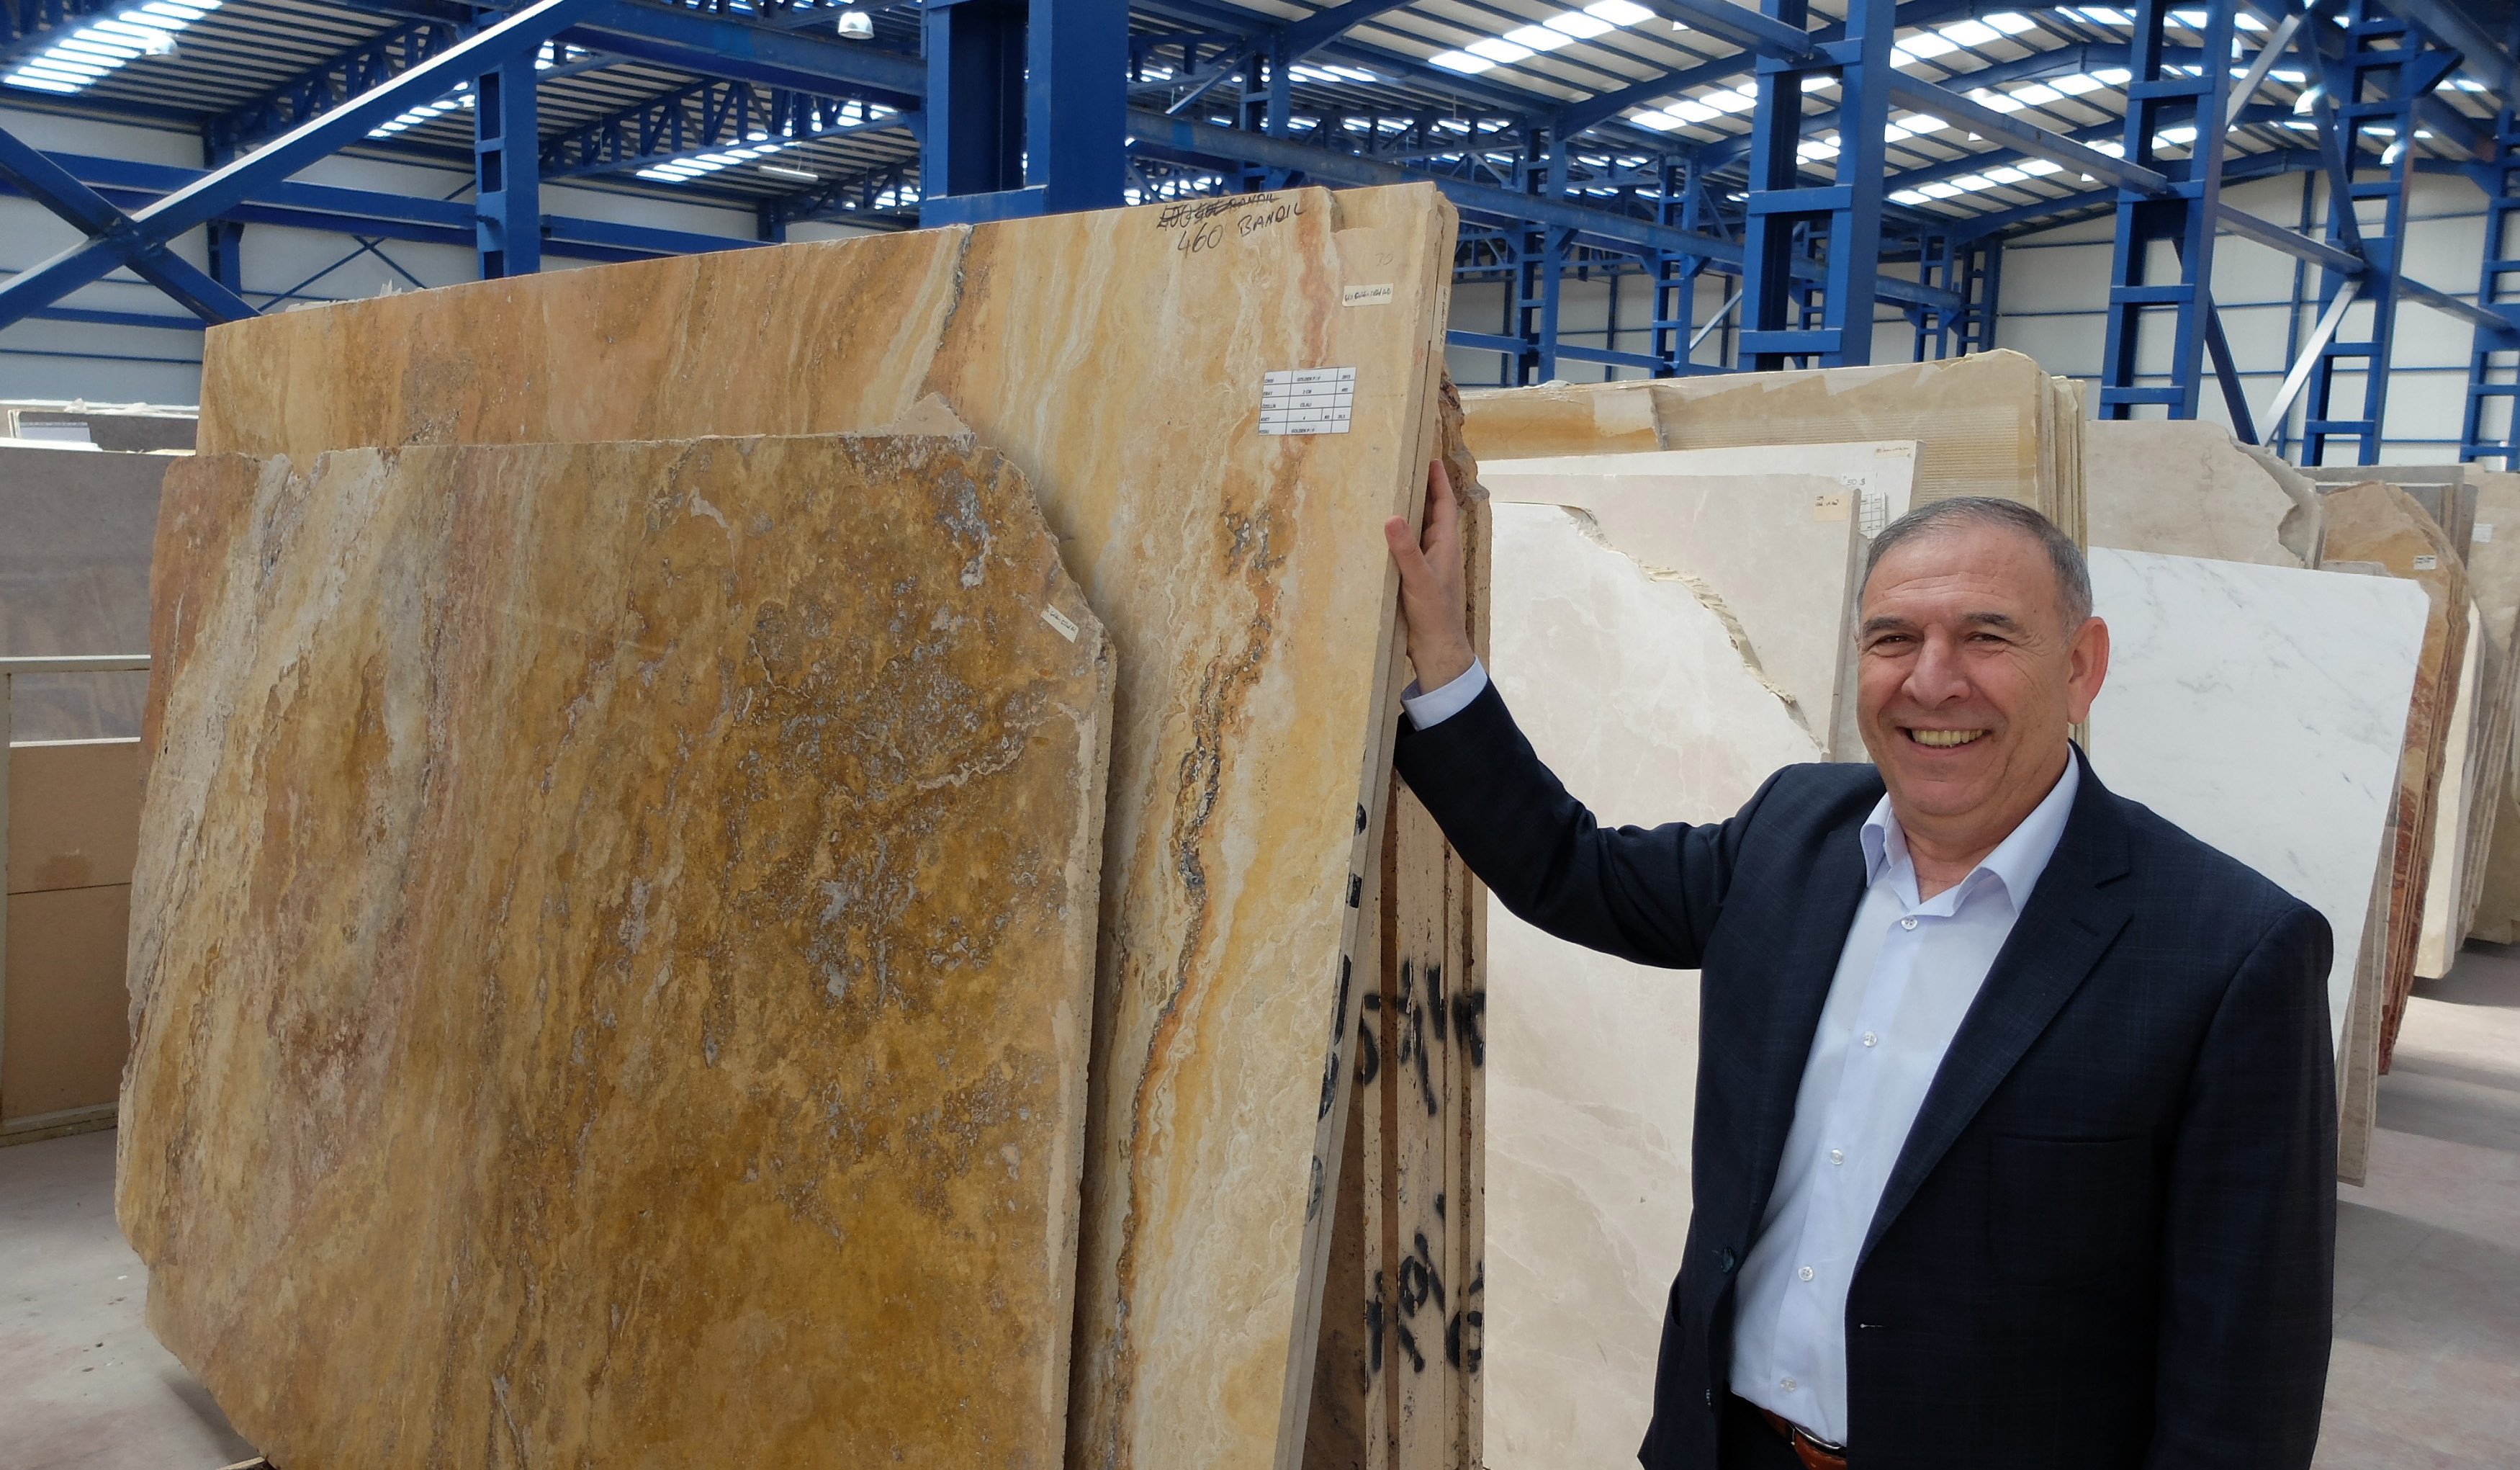 WE LISTENED THE STORY BEHIND HUROK MARBLE CELEBRATING ITS 35TH ANNIVERSARY IN THE NATURAL STONE INDUSTRY FROM THE CHAIRMAN HUSNU OLCAR